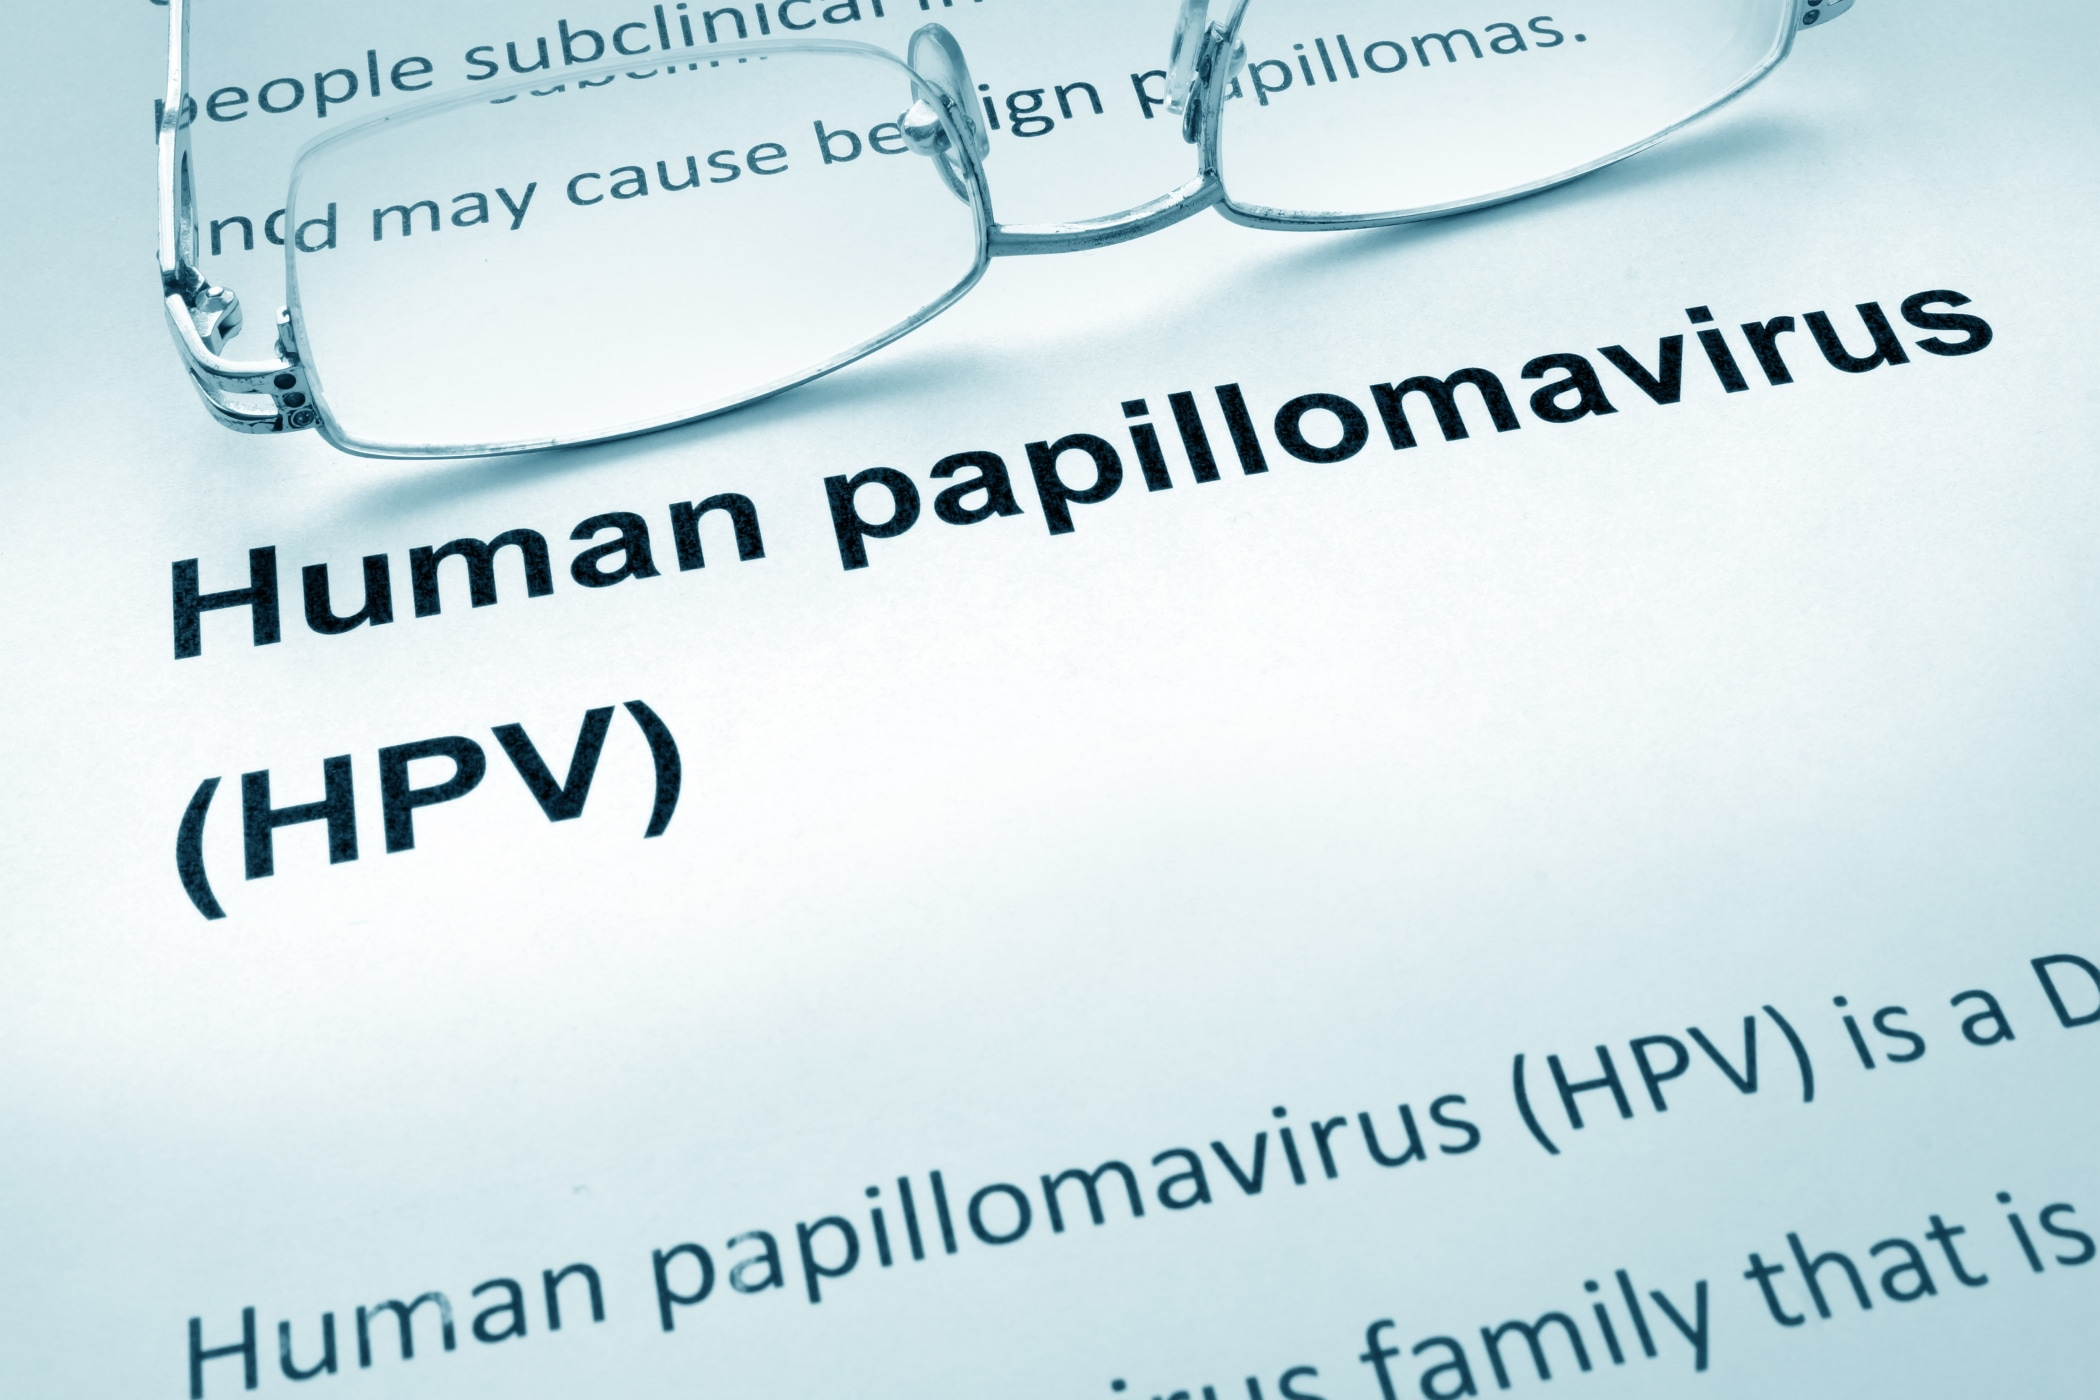 HPV research study